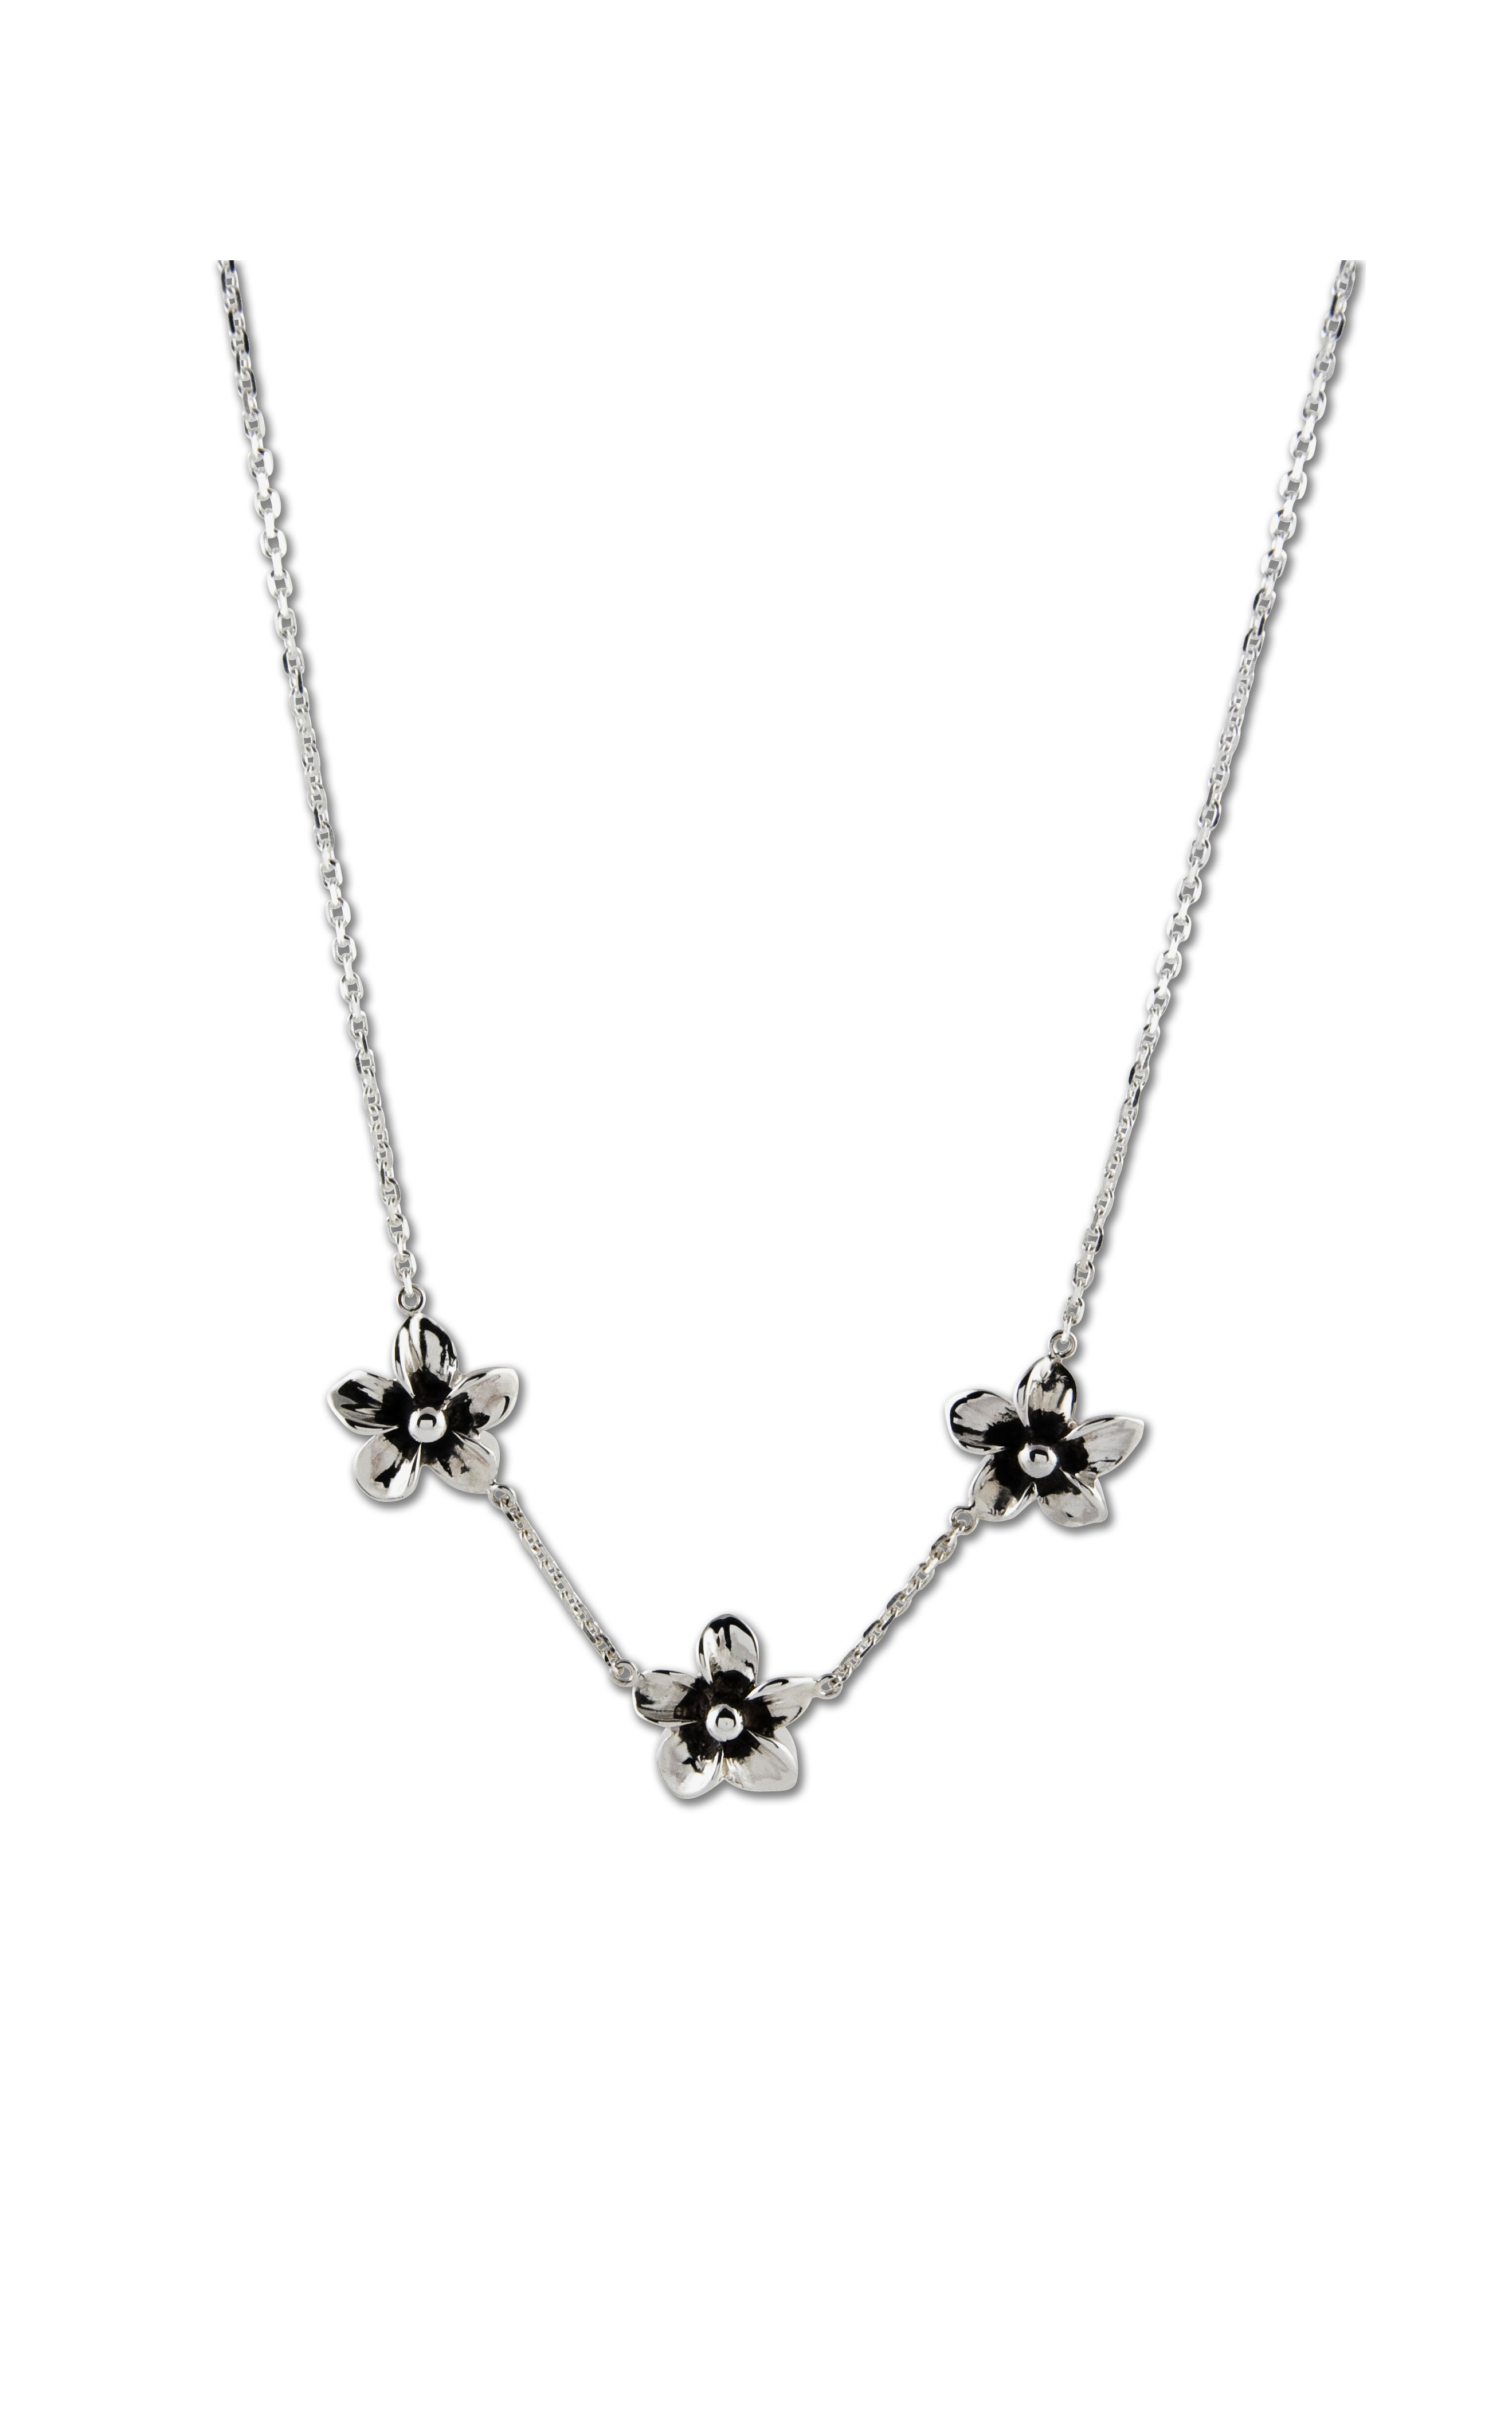 Zina Contemporary Necklace A448-17 product image